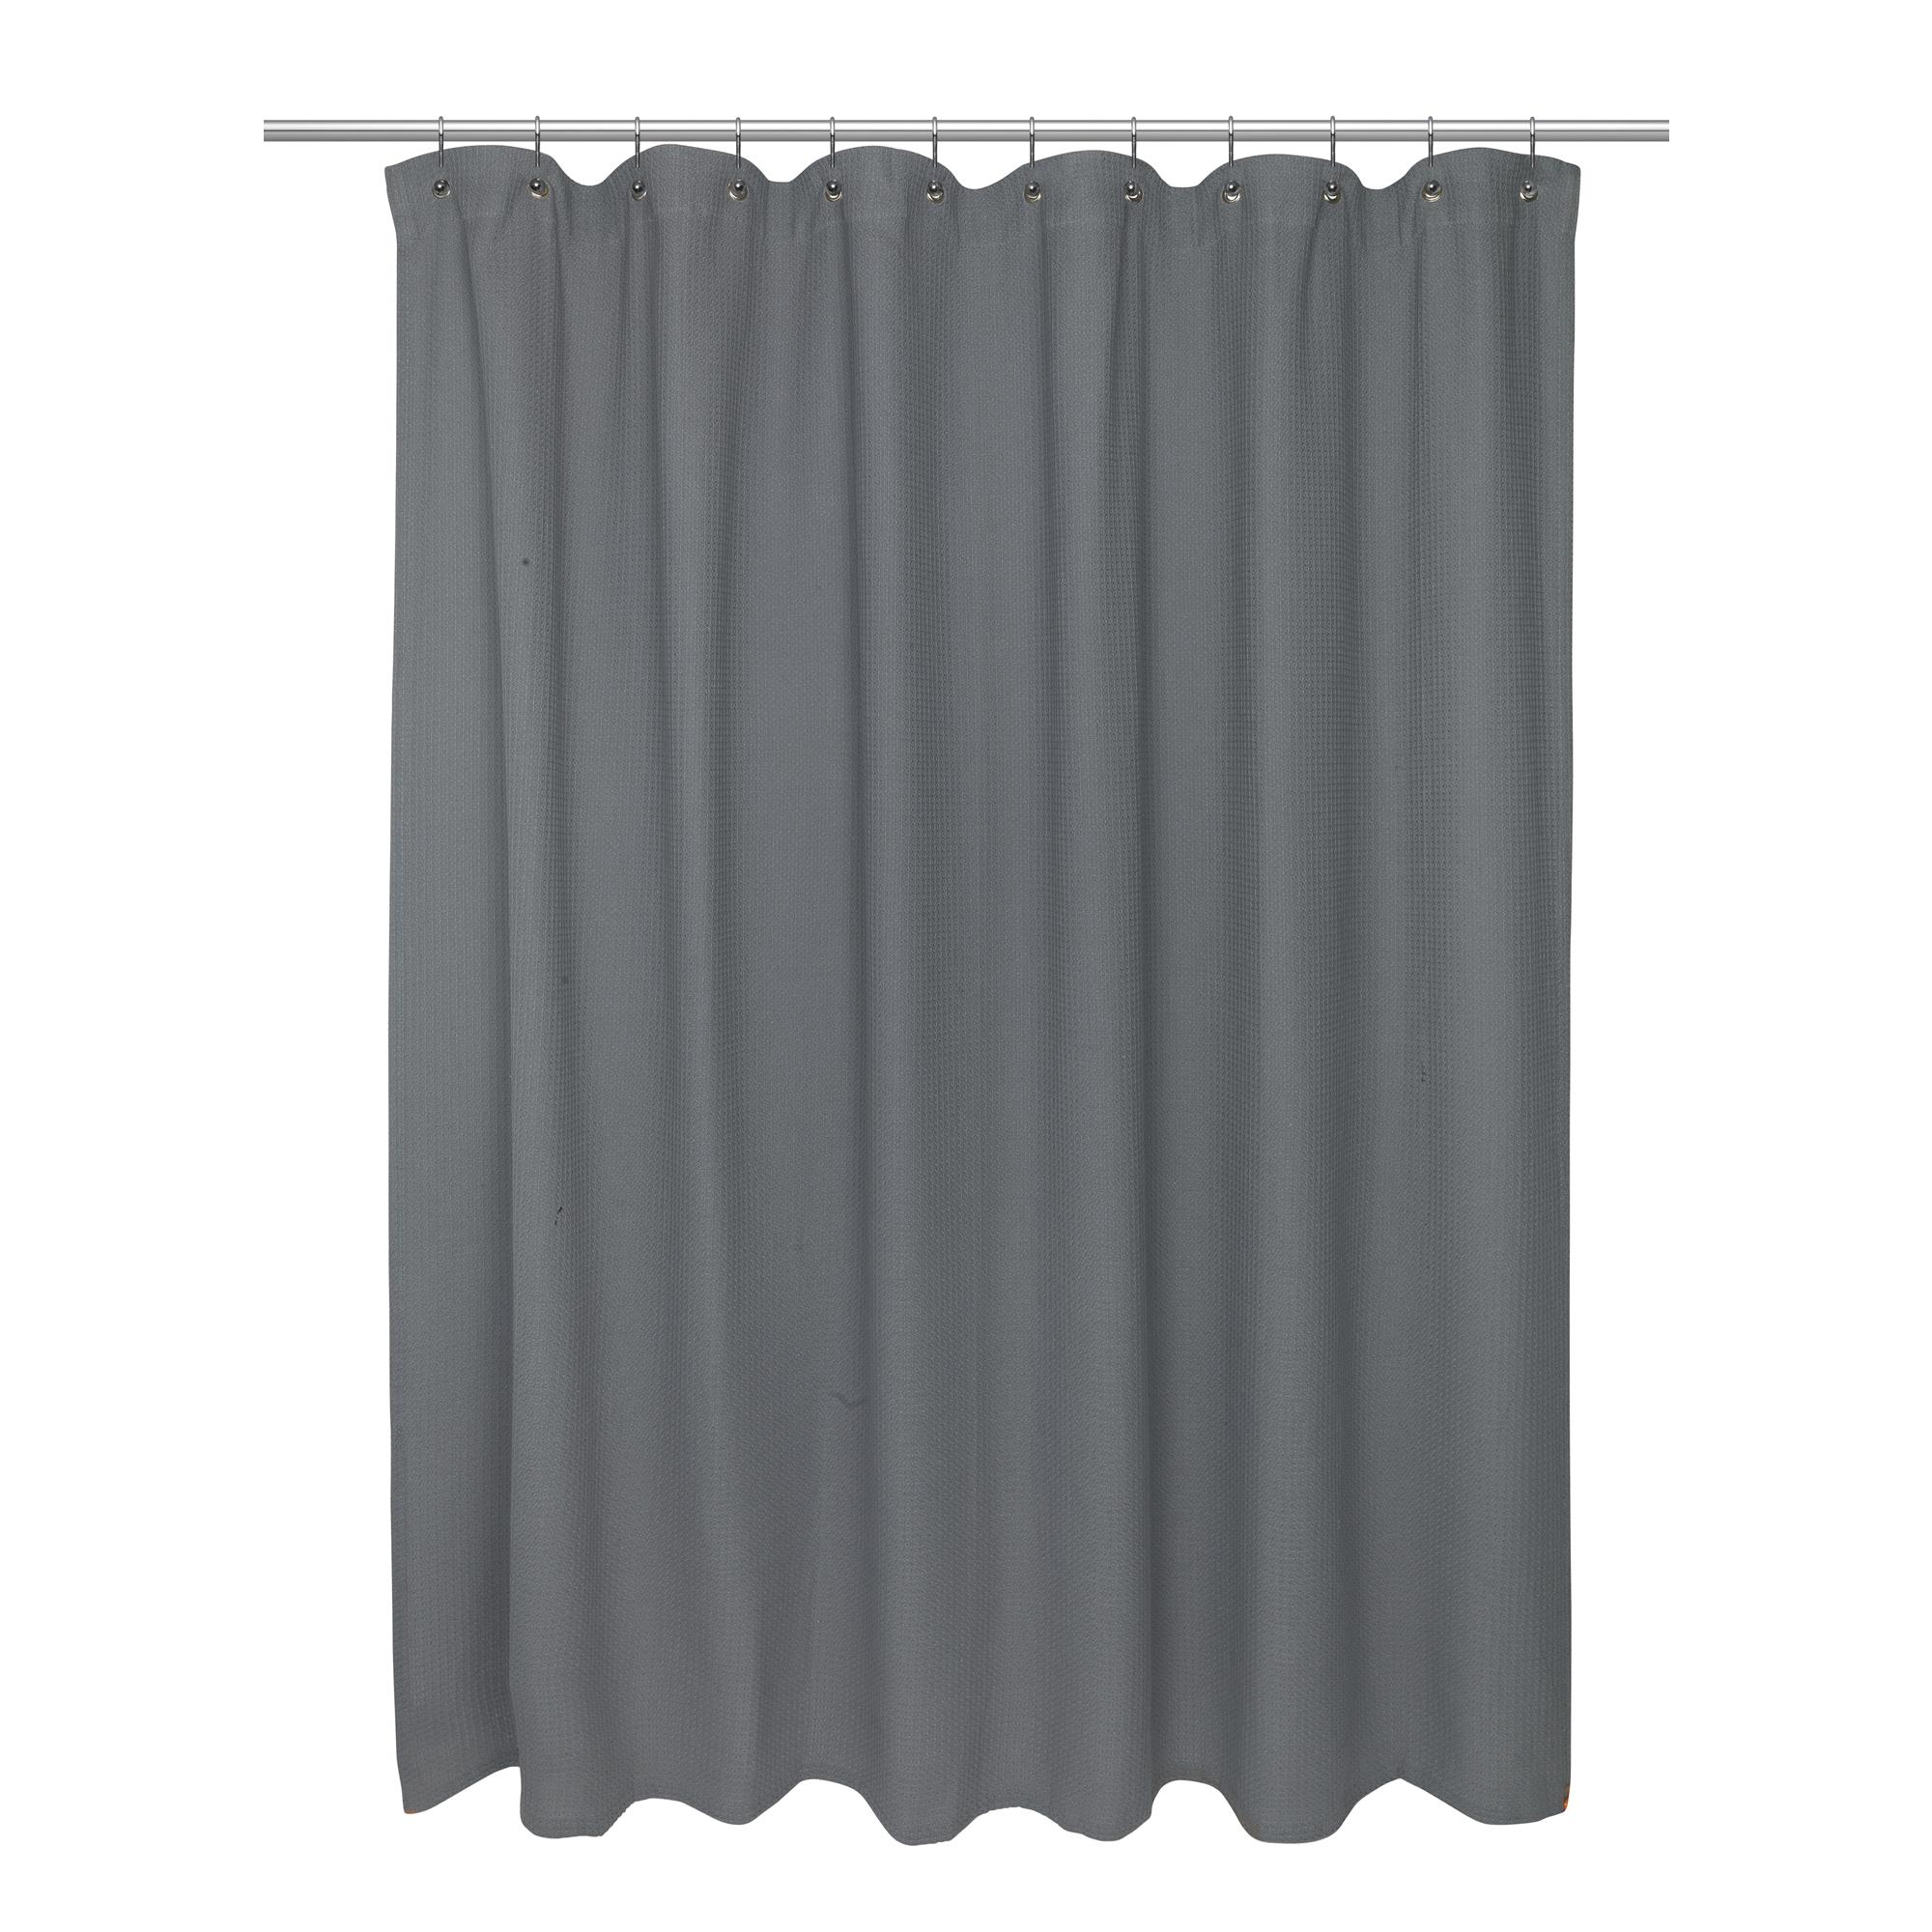 carnation home standard size 100 cotton waffle weave shower curtain pewter 71821000630 ebay. Black Bedroom Furniture Sets. Home Design Ideas